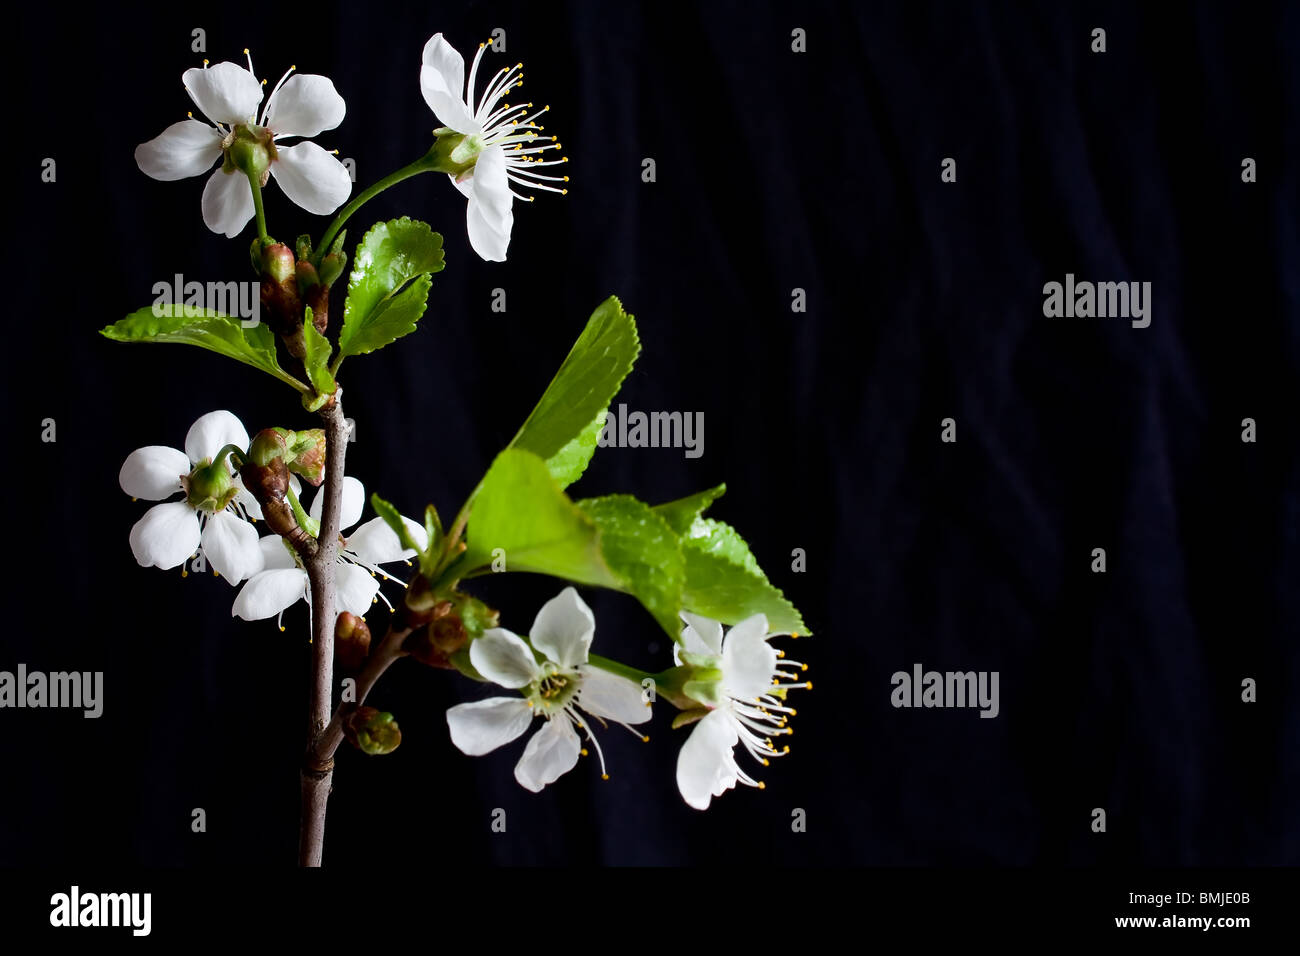 Beautiful flowers blooming cherry on a black background stock photo beautiful flowers blooming cherry on a black background izmirmasajfo Images